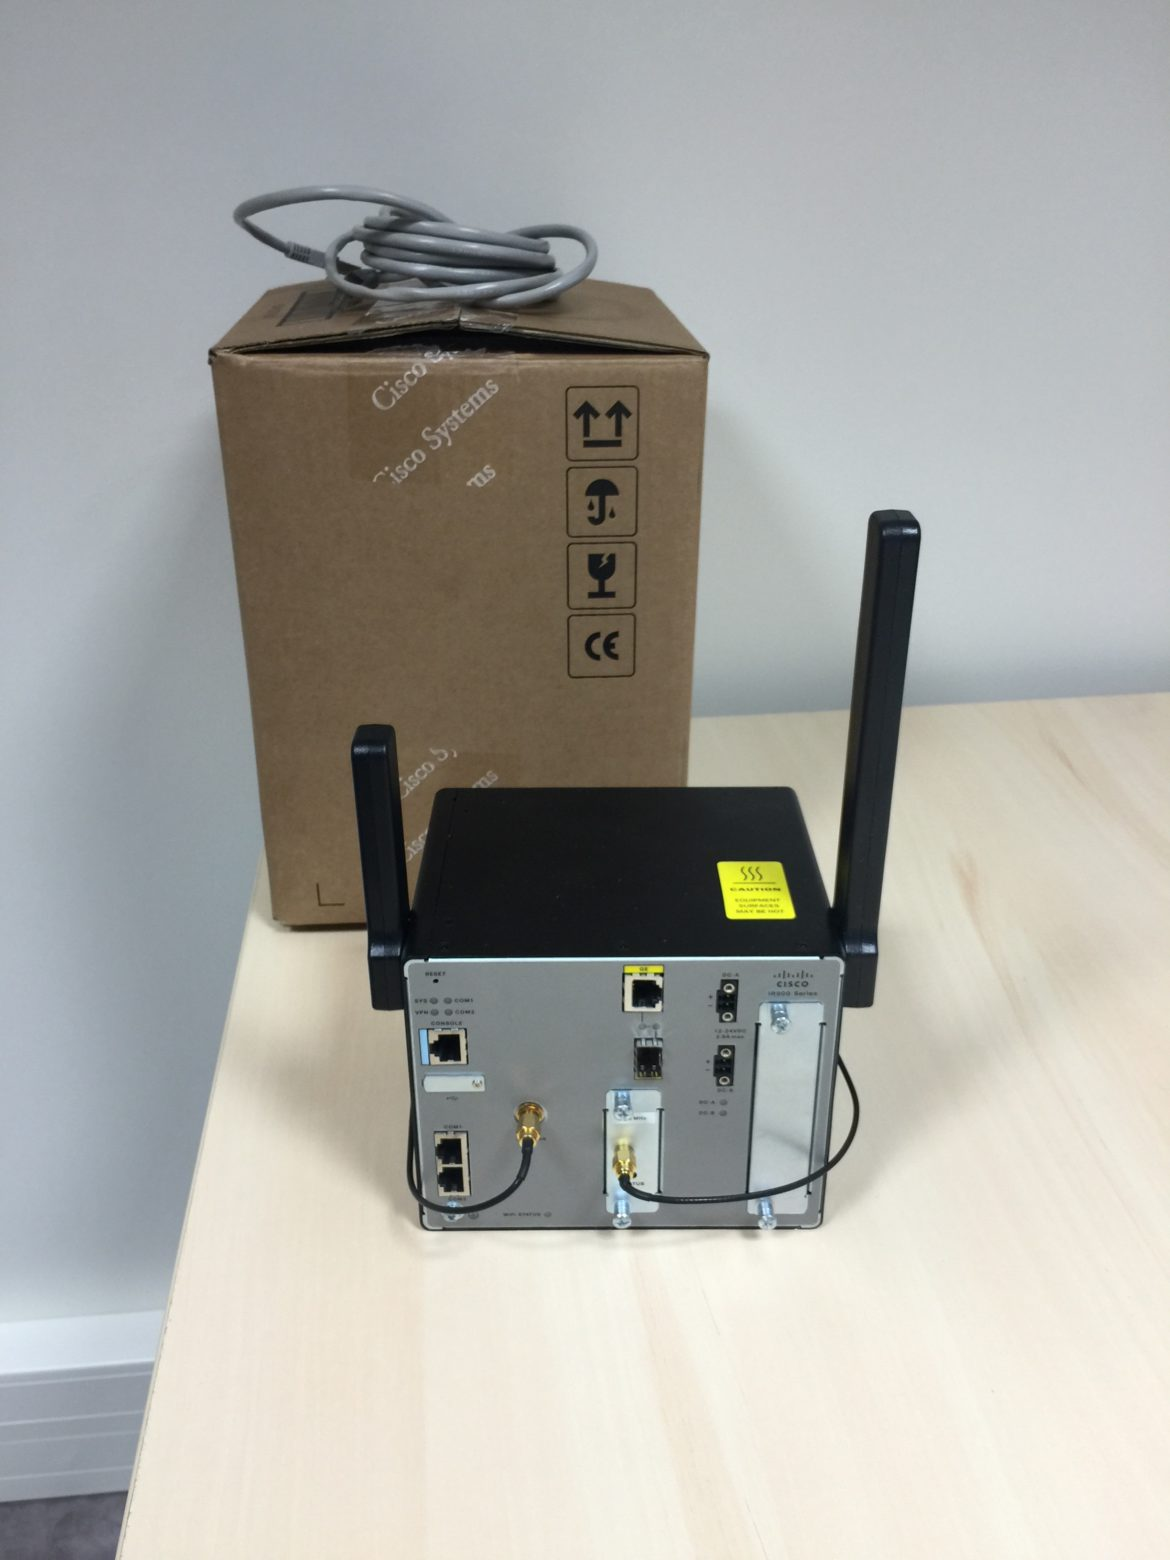 LoRa Base Station